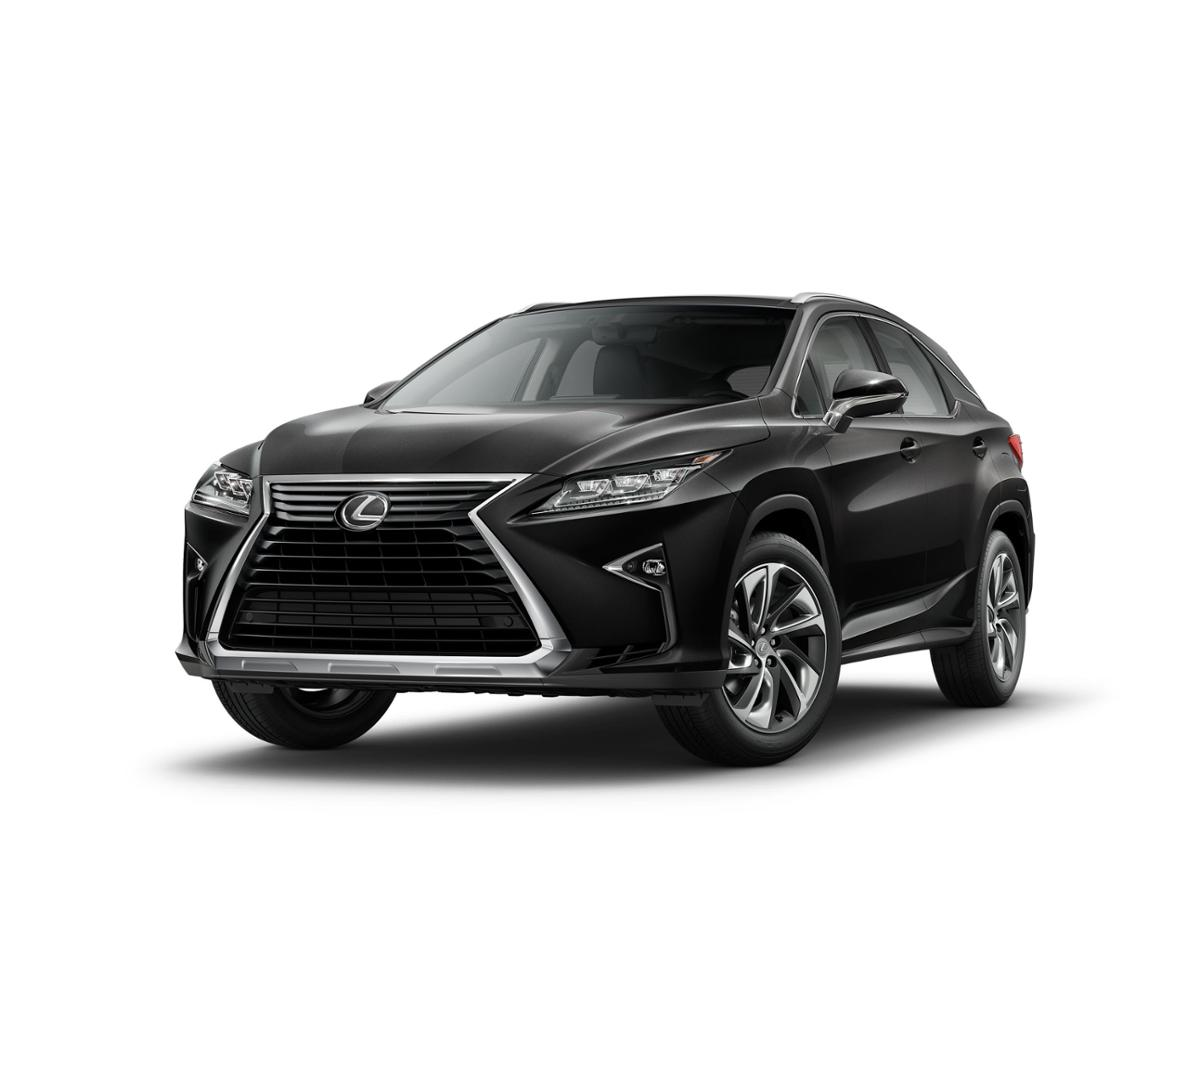 2018 Lexus RX 350 Vehicle Photo in Las Vegas, NV 89146